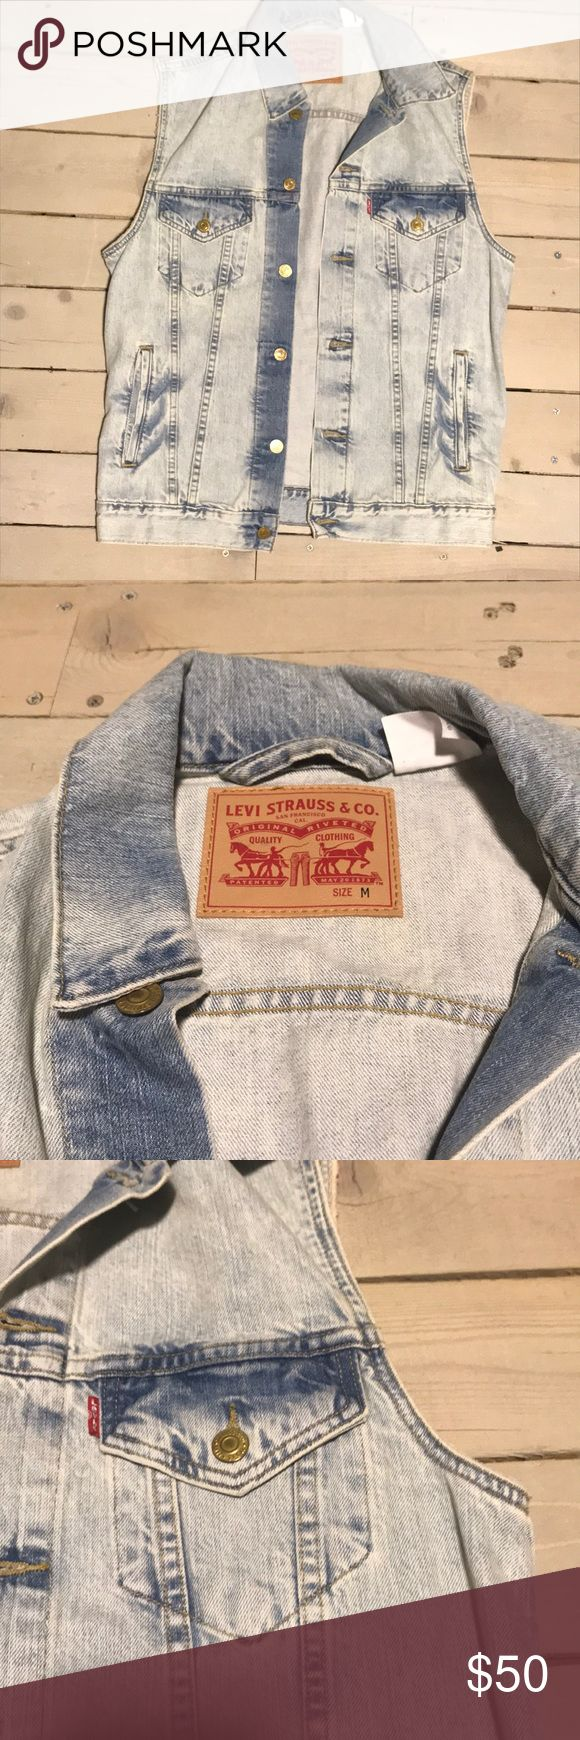 Rare Levi's Vest! Rare find for a Men's Levi Vest! Only wore it once and it was cute on me as an oversized vest! Lightwash denim and super cute! Slight discoloration on back near collar, bought it like that! Levi's Jackets & Coats Vests